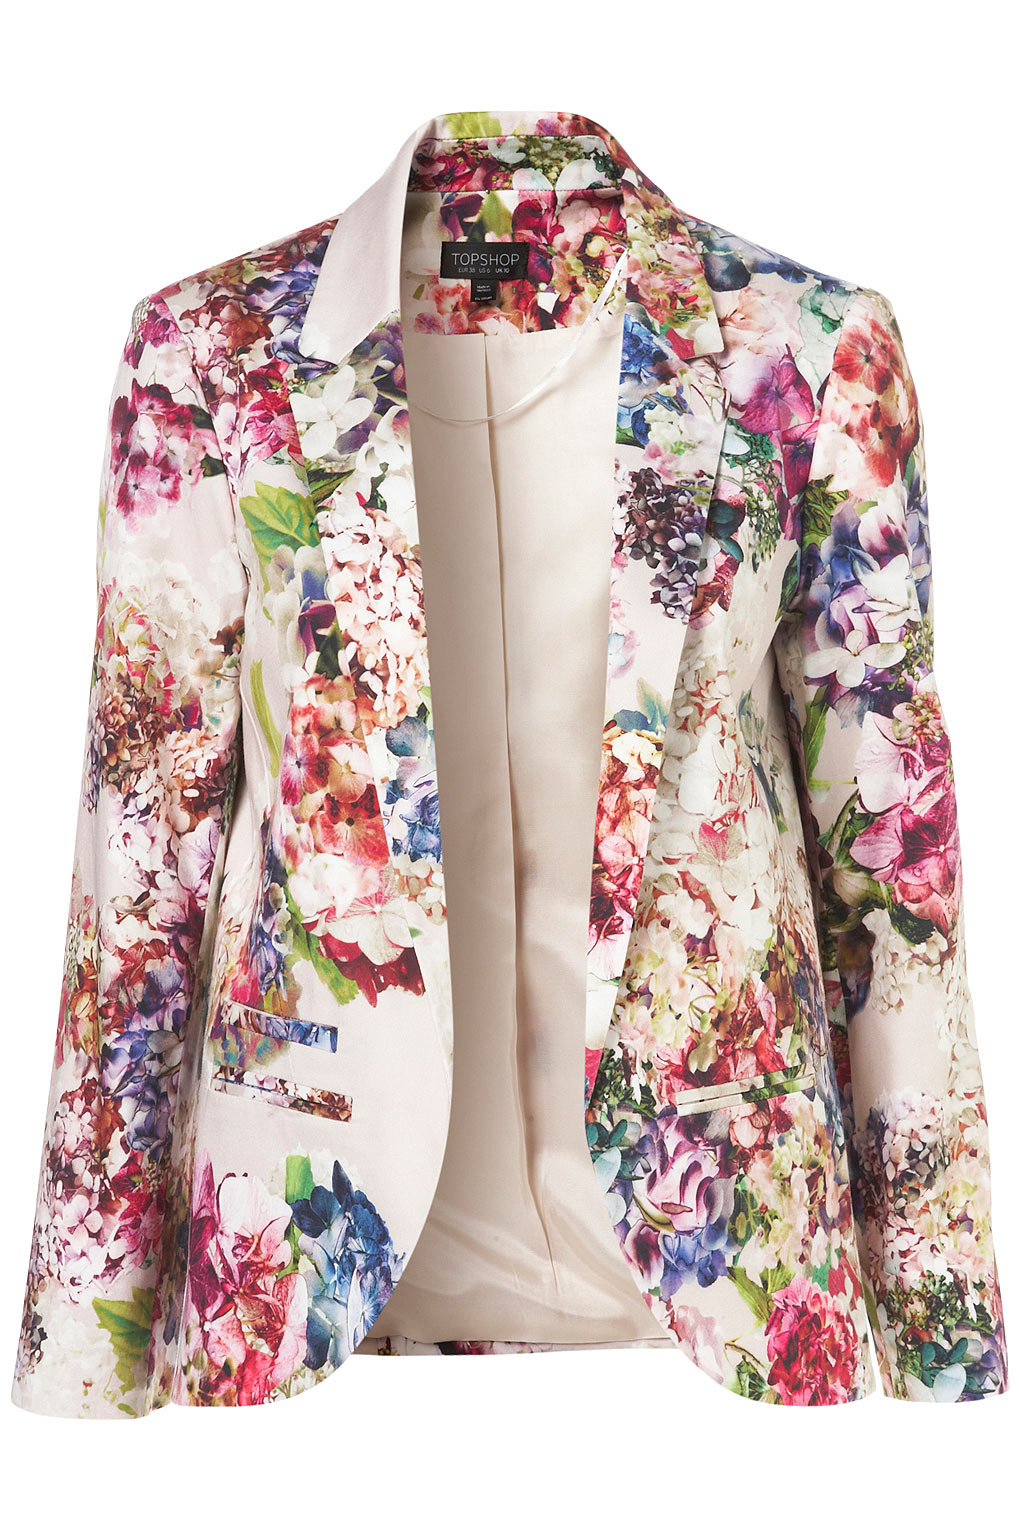 Images of Floral Blazer - Reikian